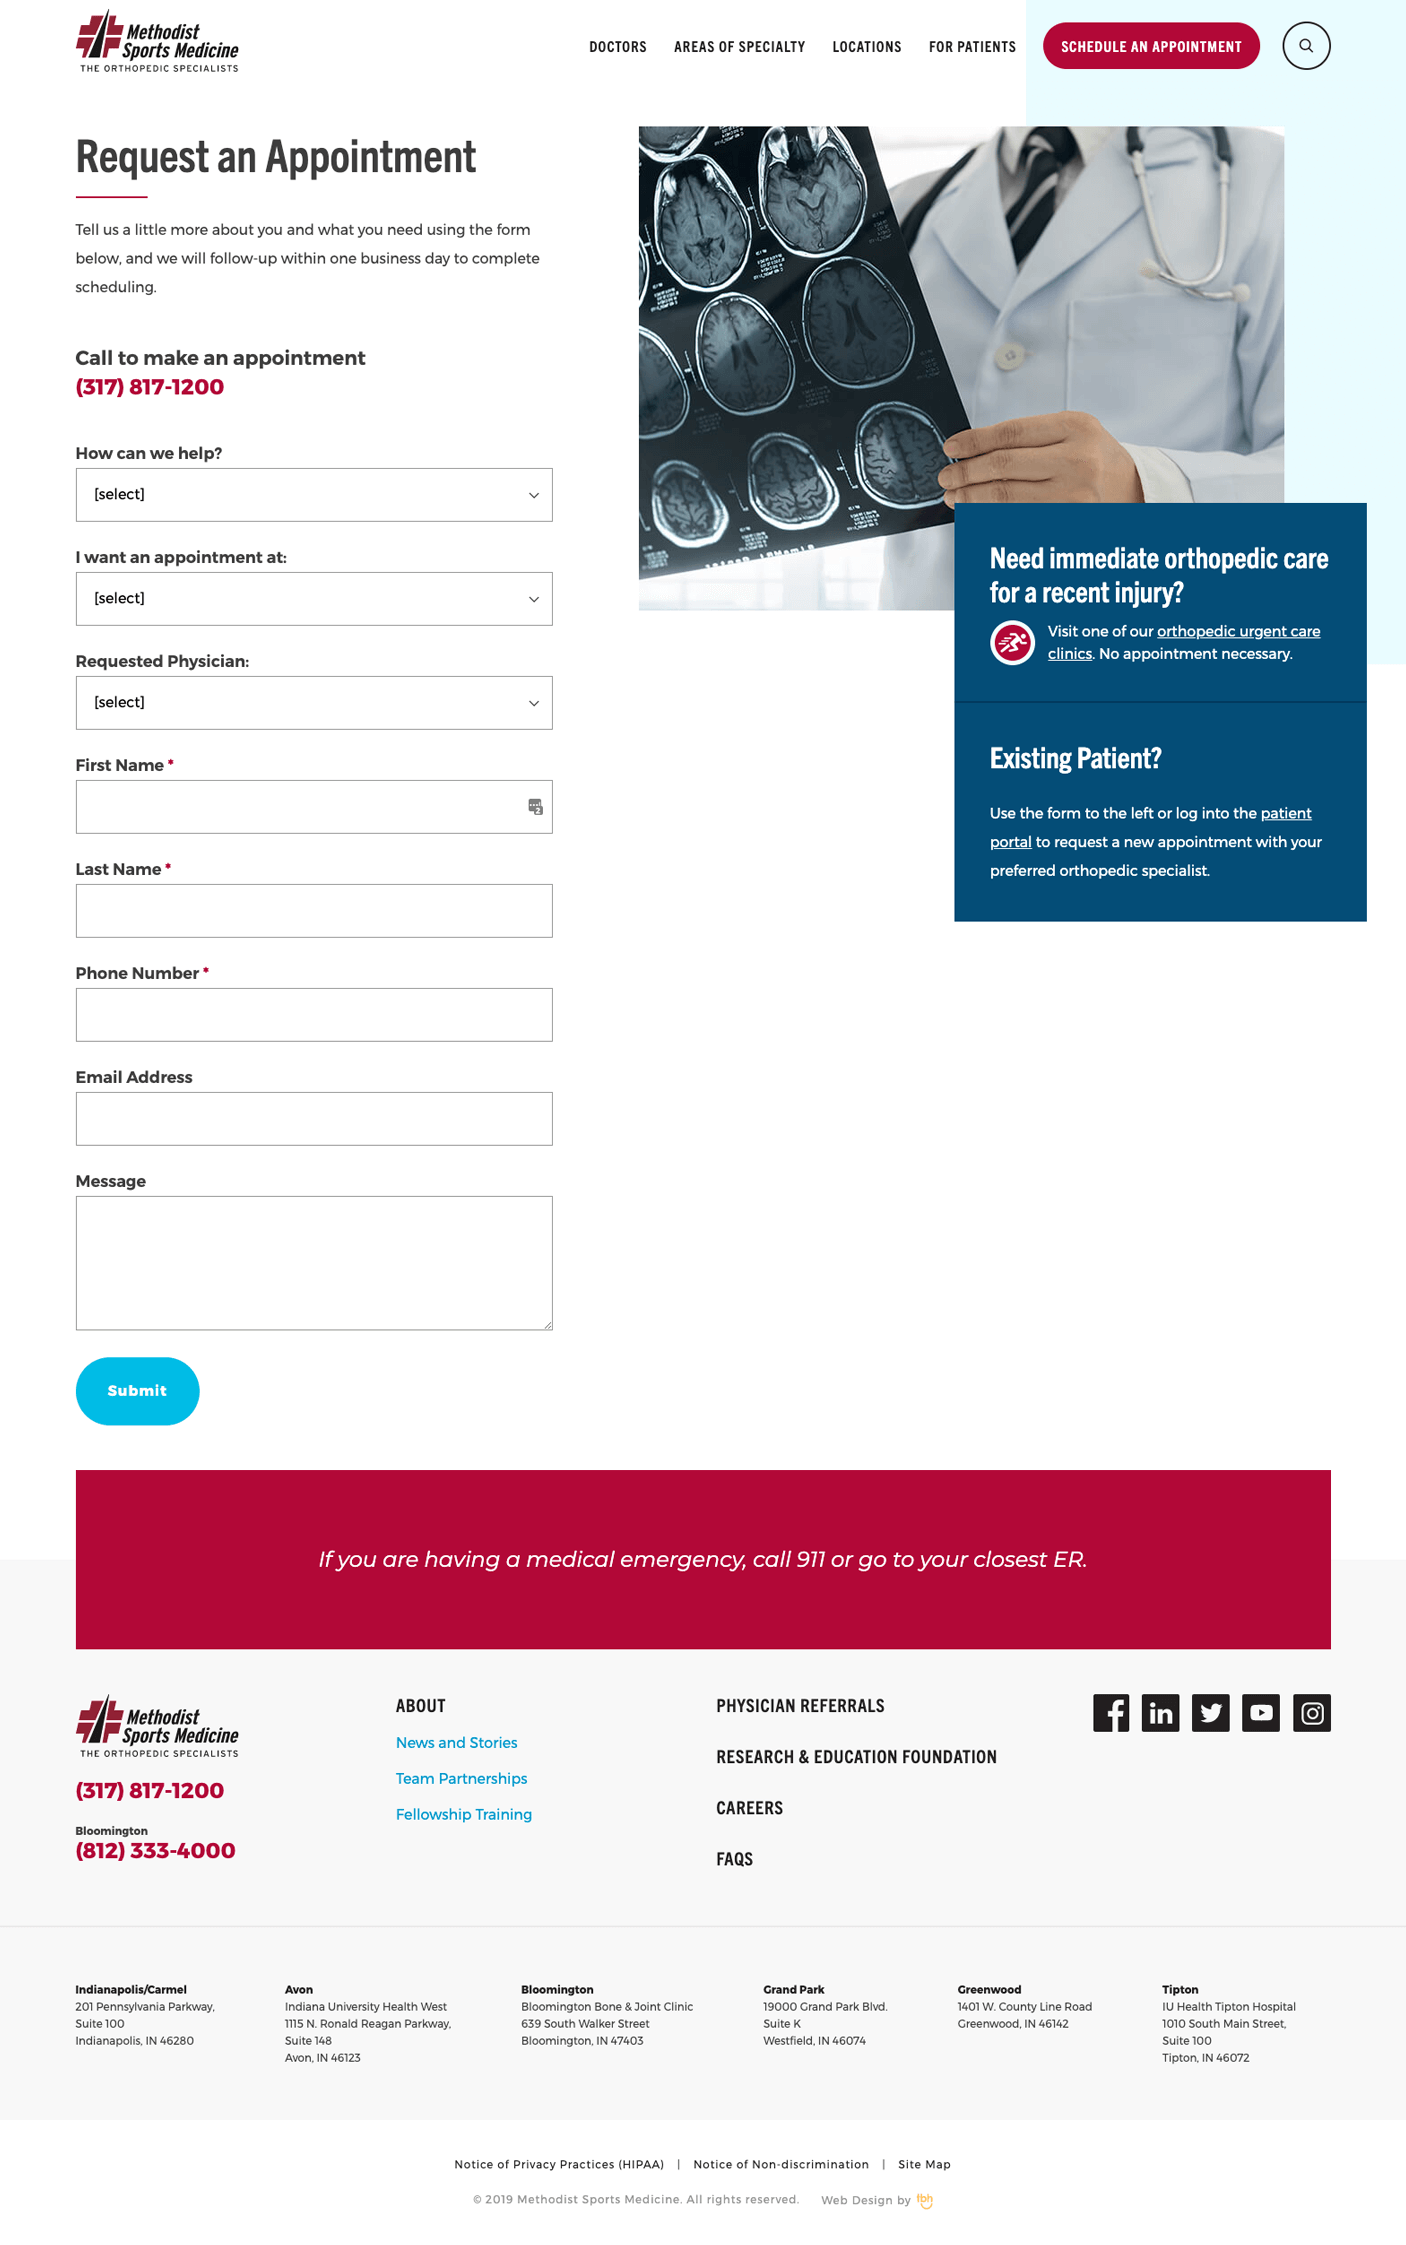 Request an Appointment form web page